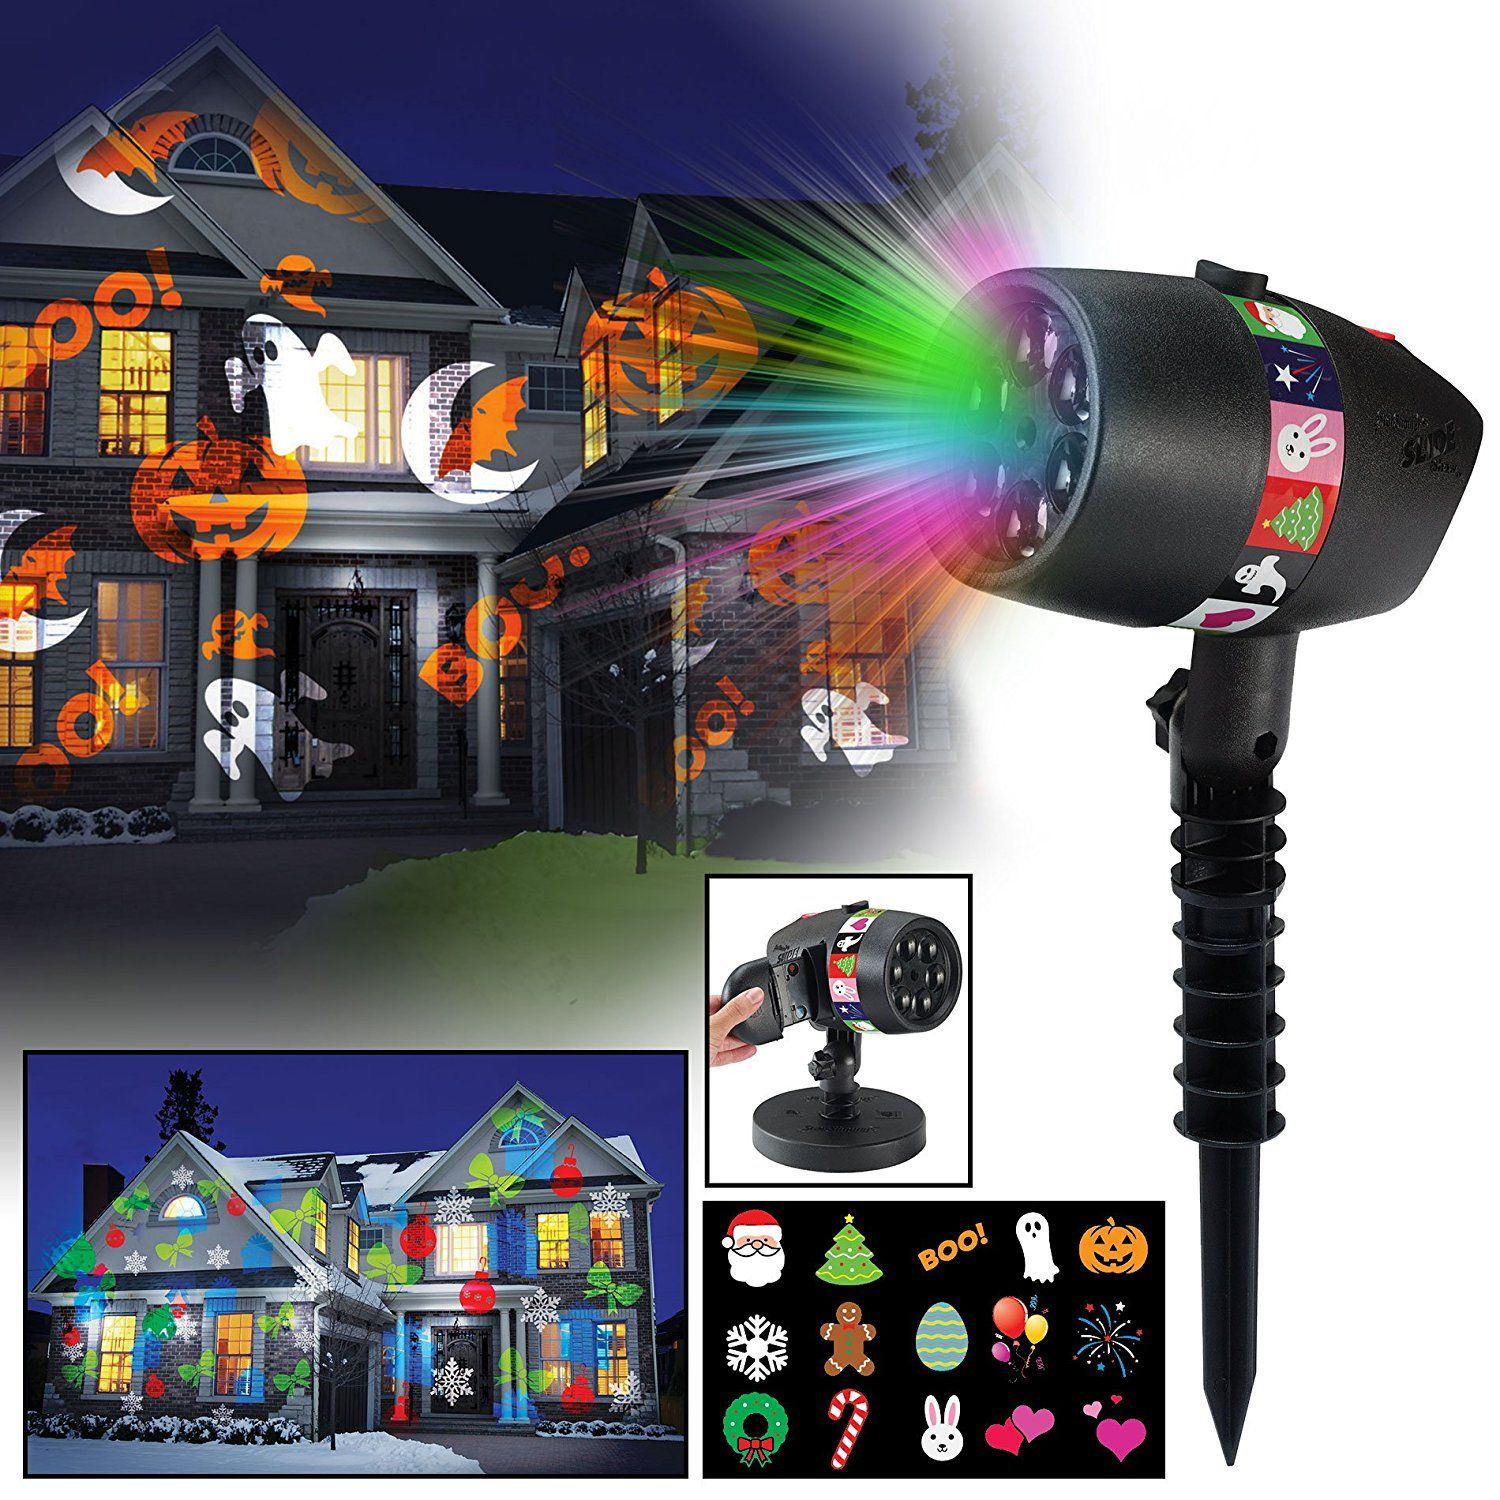 This bestselling projector is great for Halloween